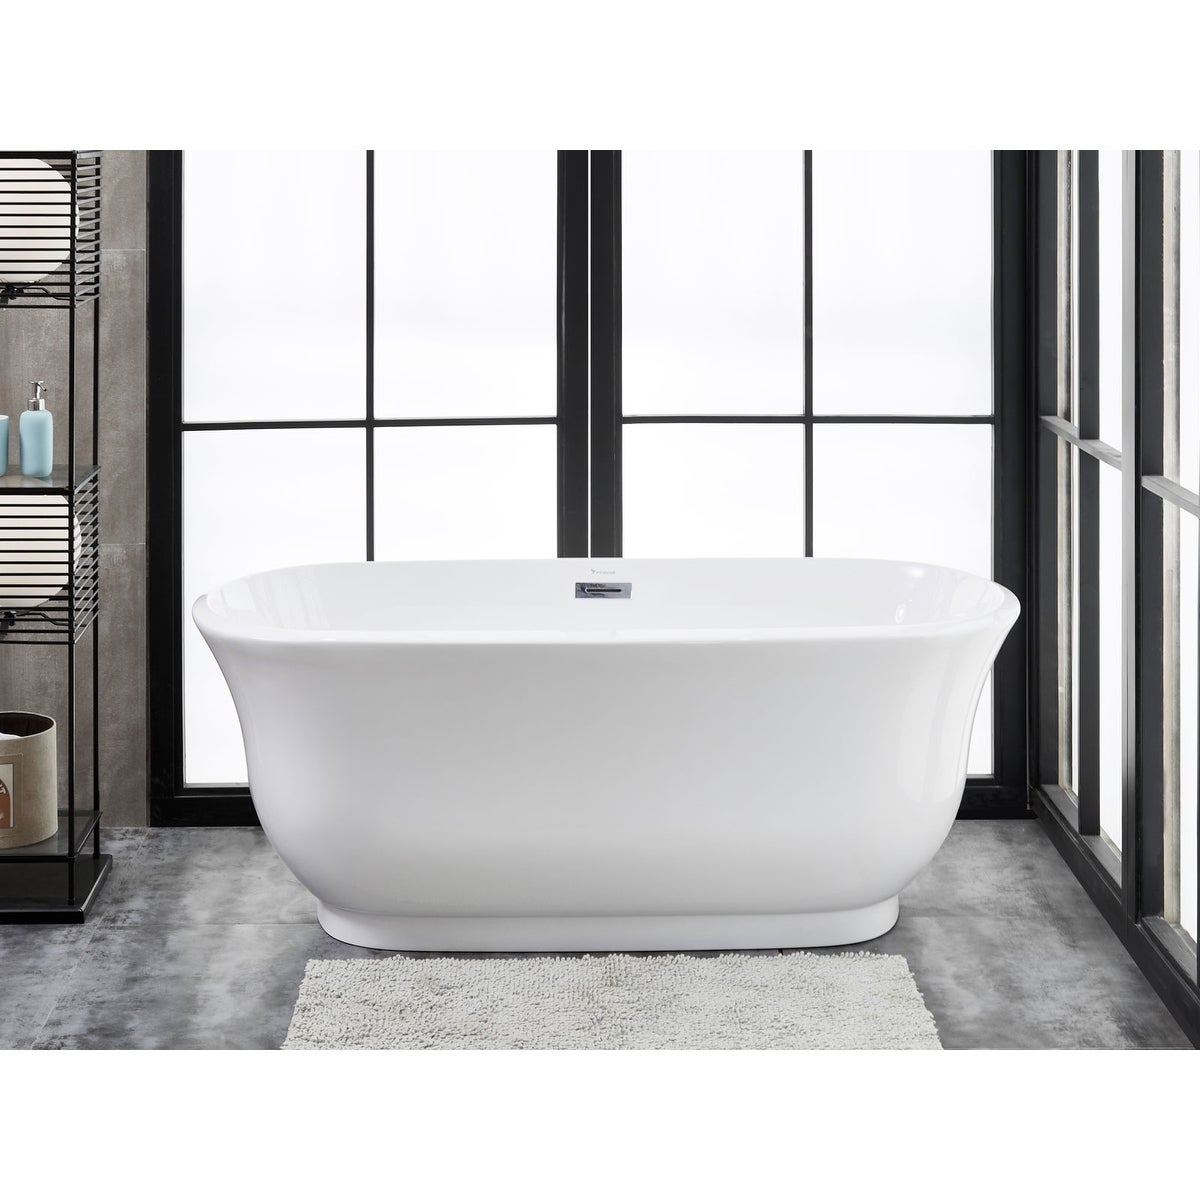 Bathtubs | Shop our Best Home Improvement Deals Online at Overstock.com